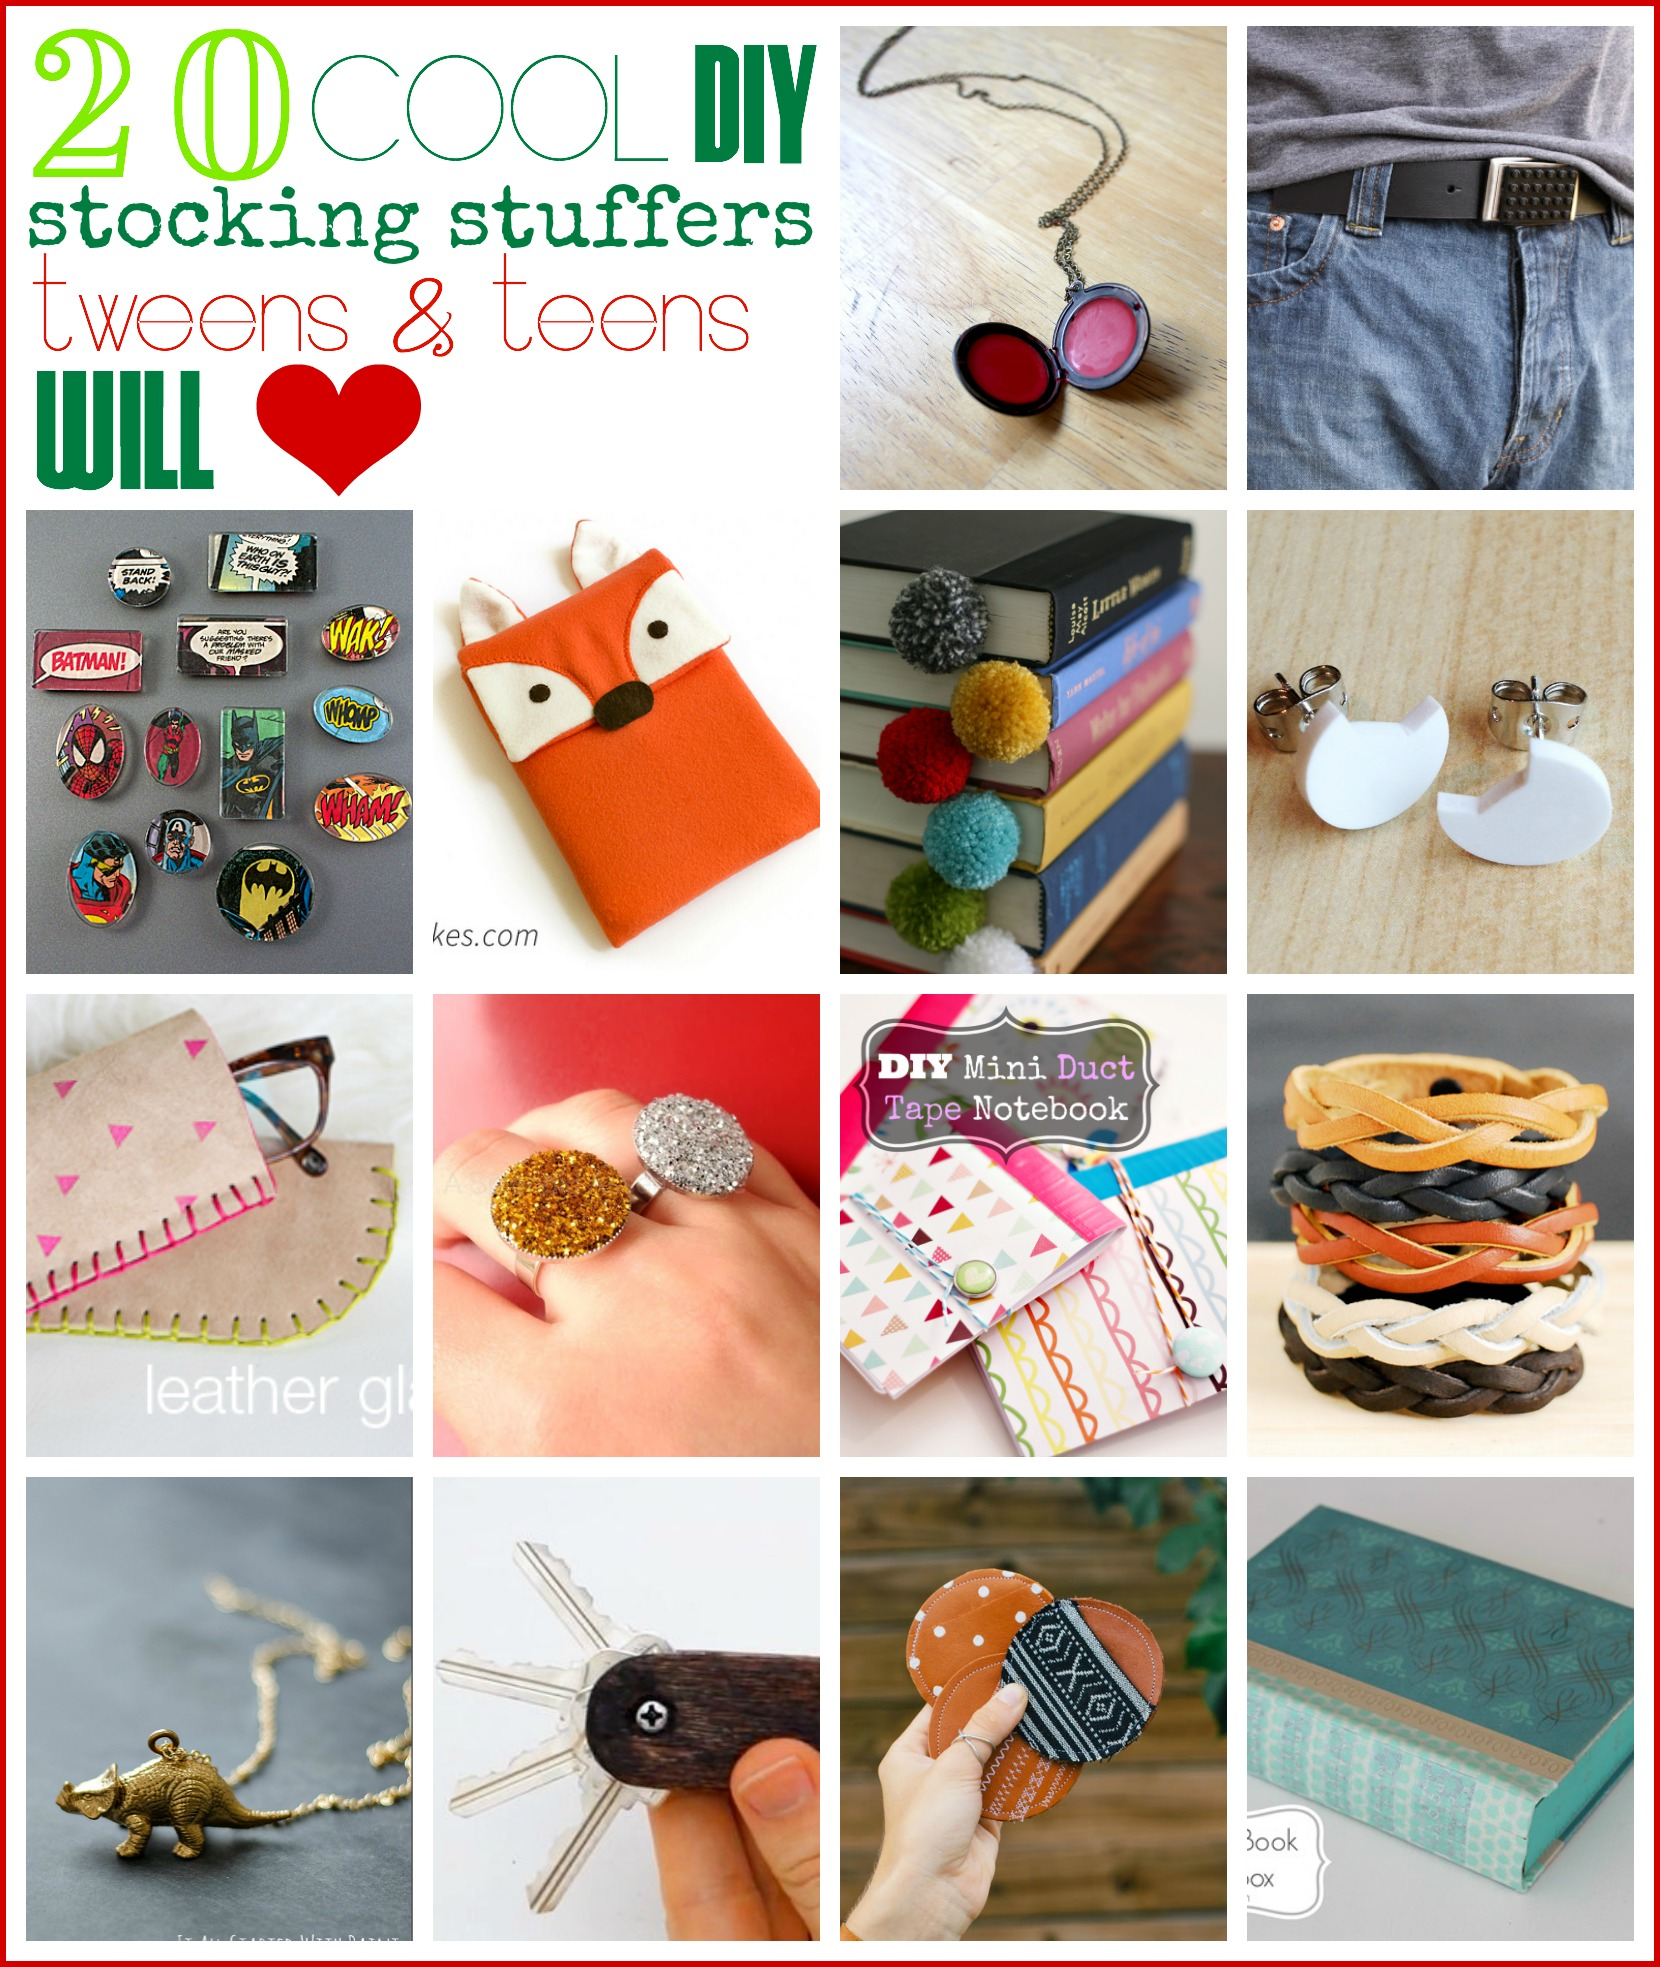 Find The Perfect Stocking Stuffers For Teens And Tweens Without